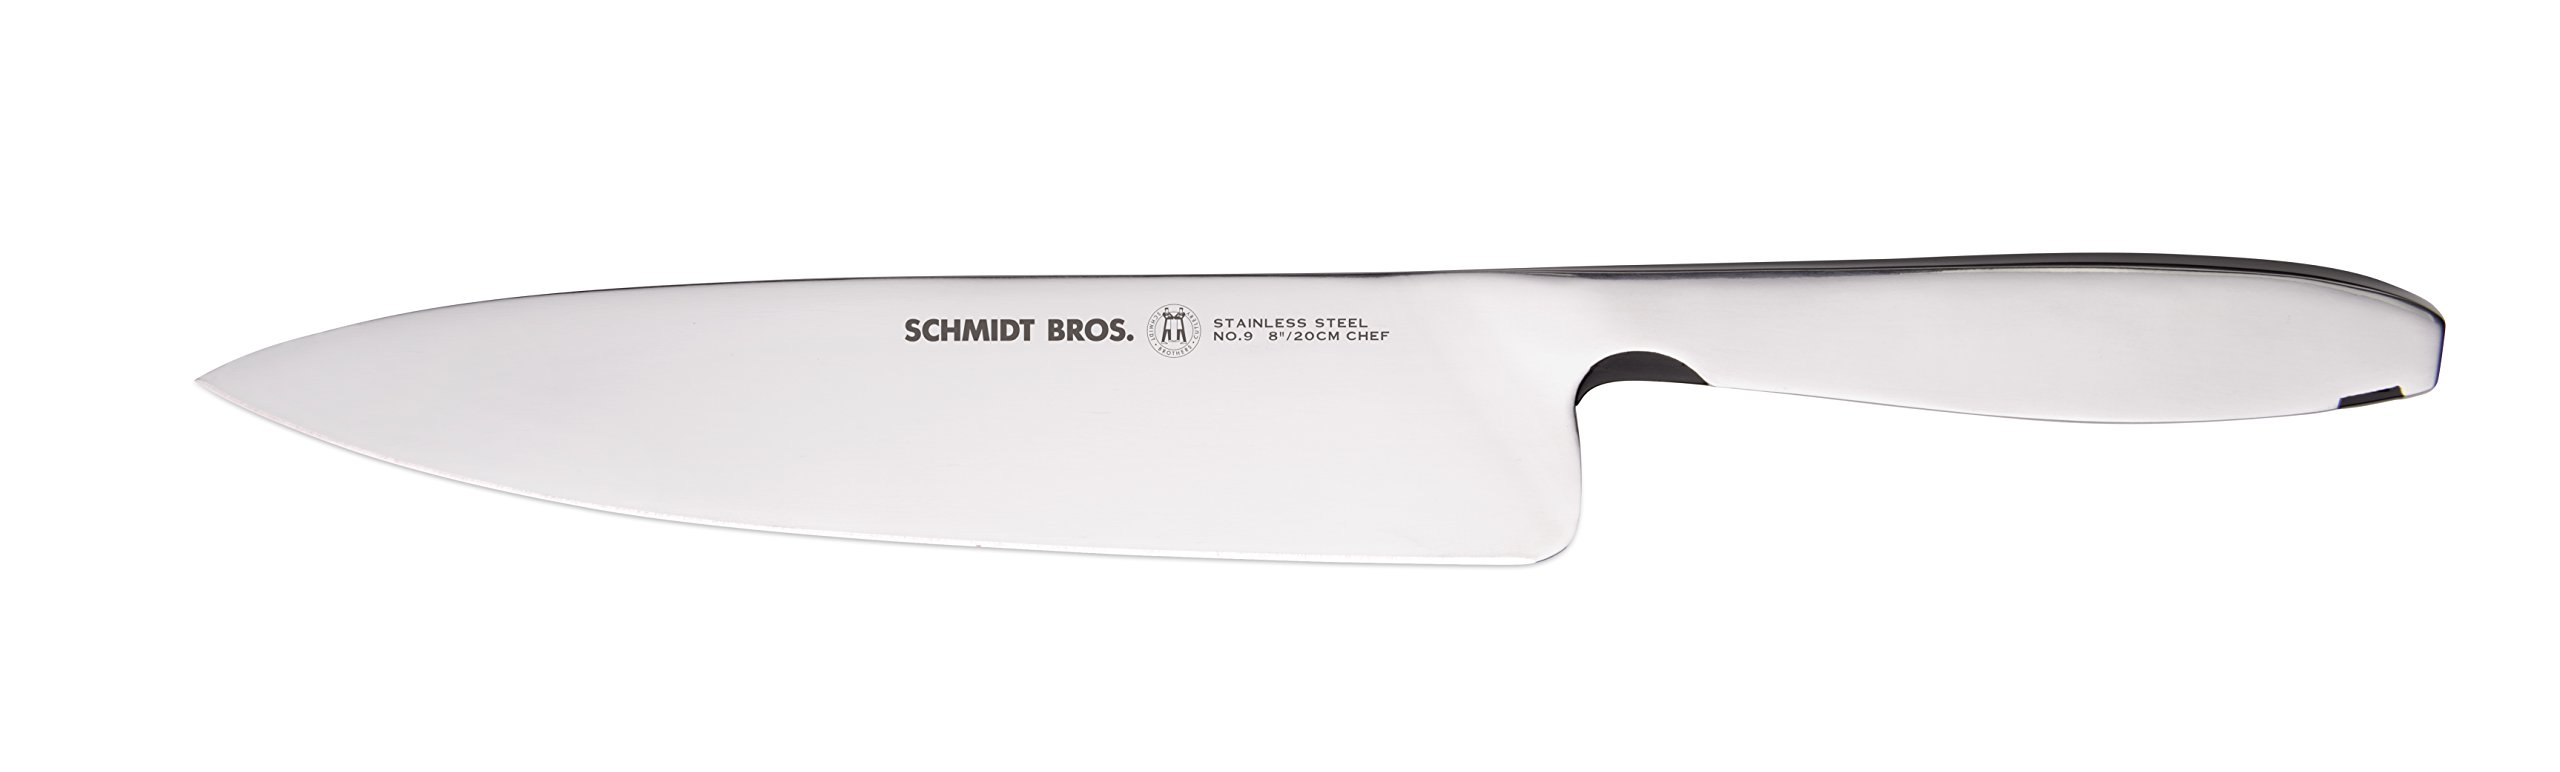 Hudson Home Schmidt Brothers Cutlery, SSCCH08, 9 Steel Cut 8'' Chef Knife, Stainless Steel